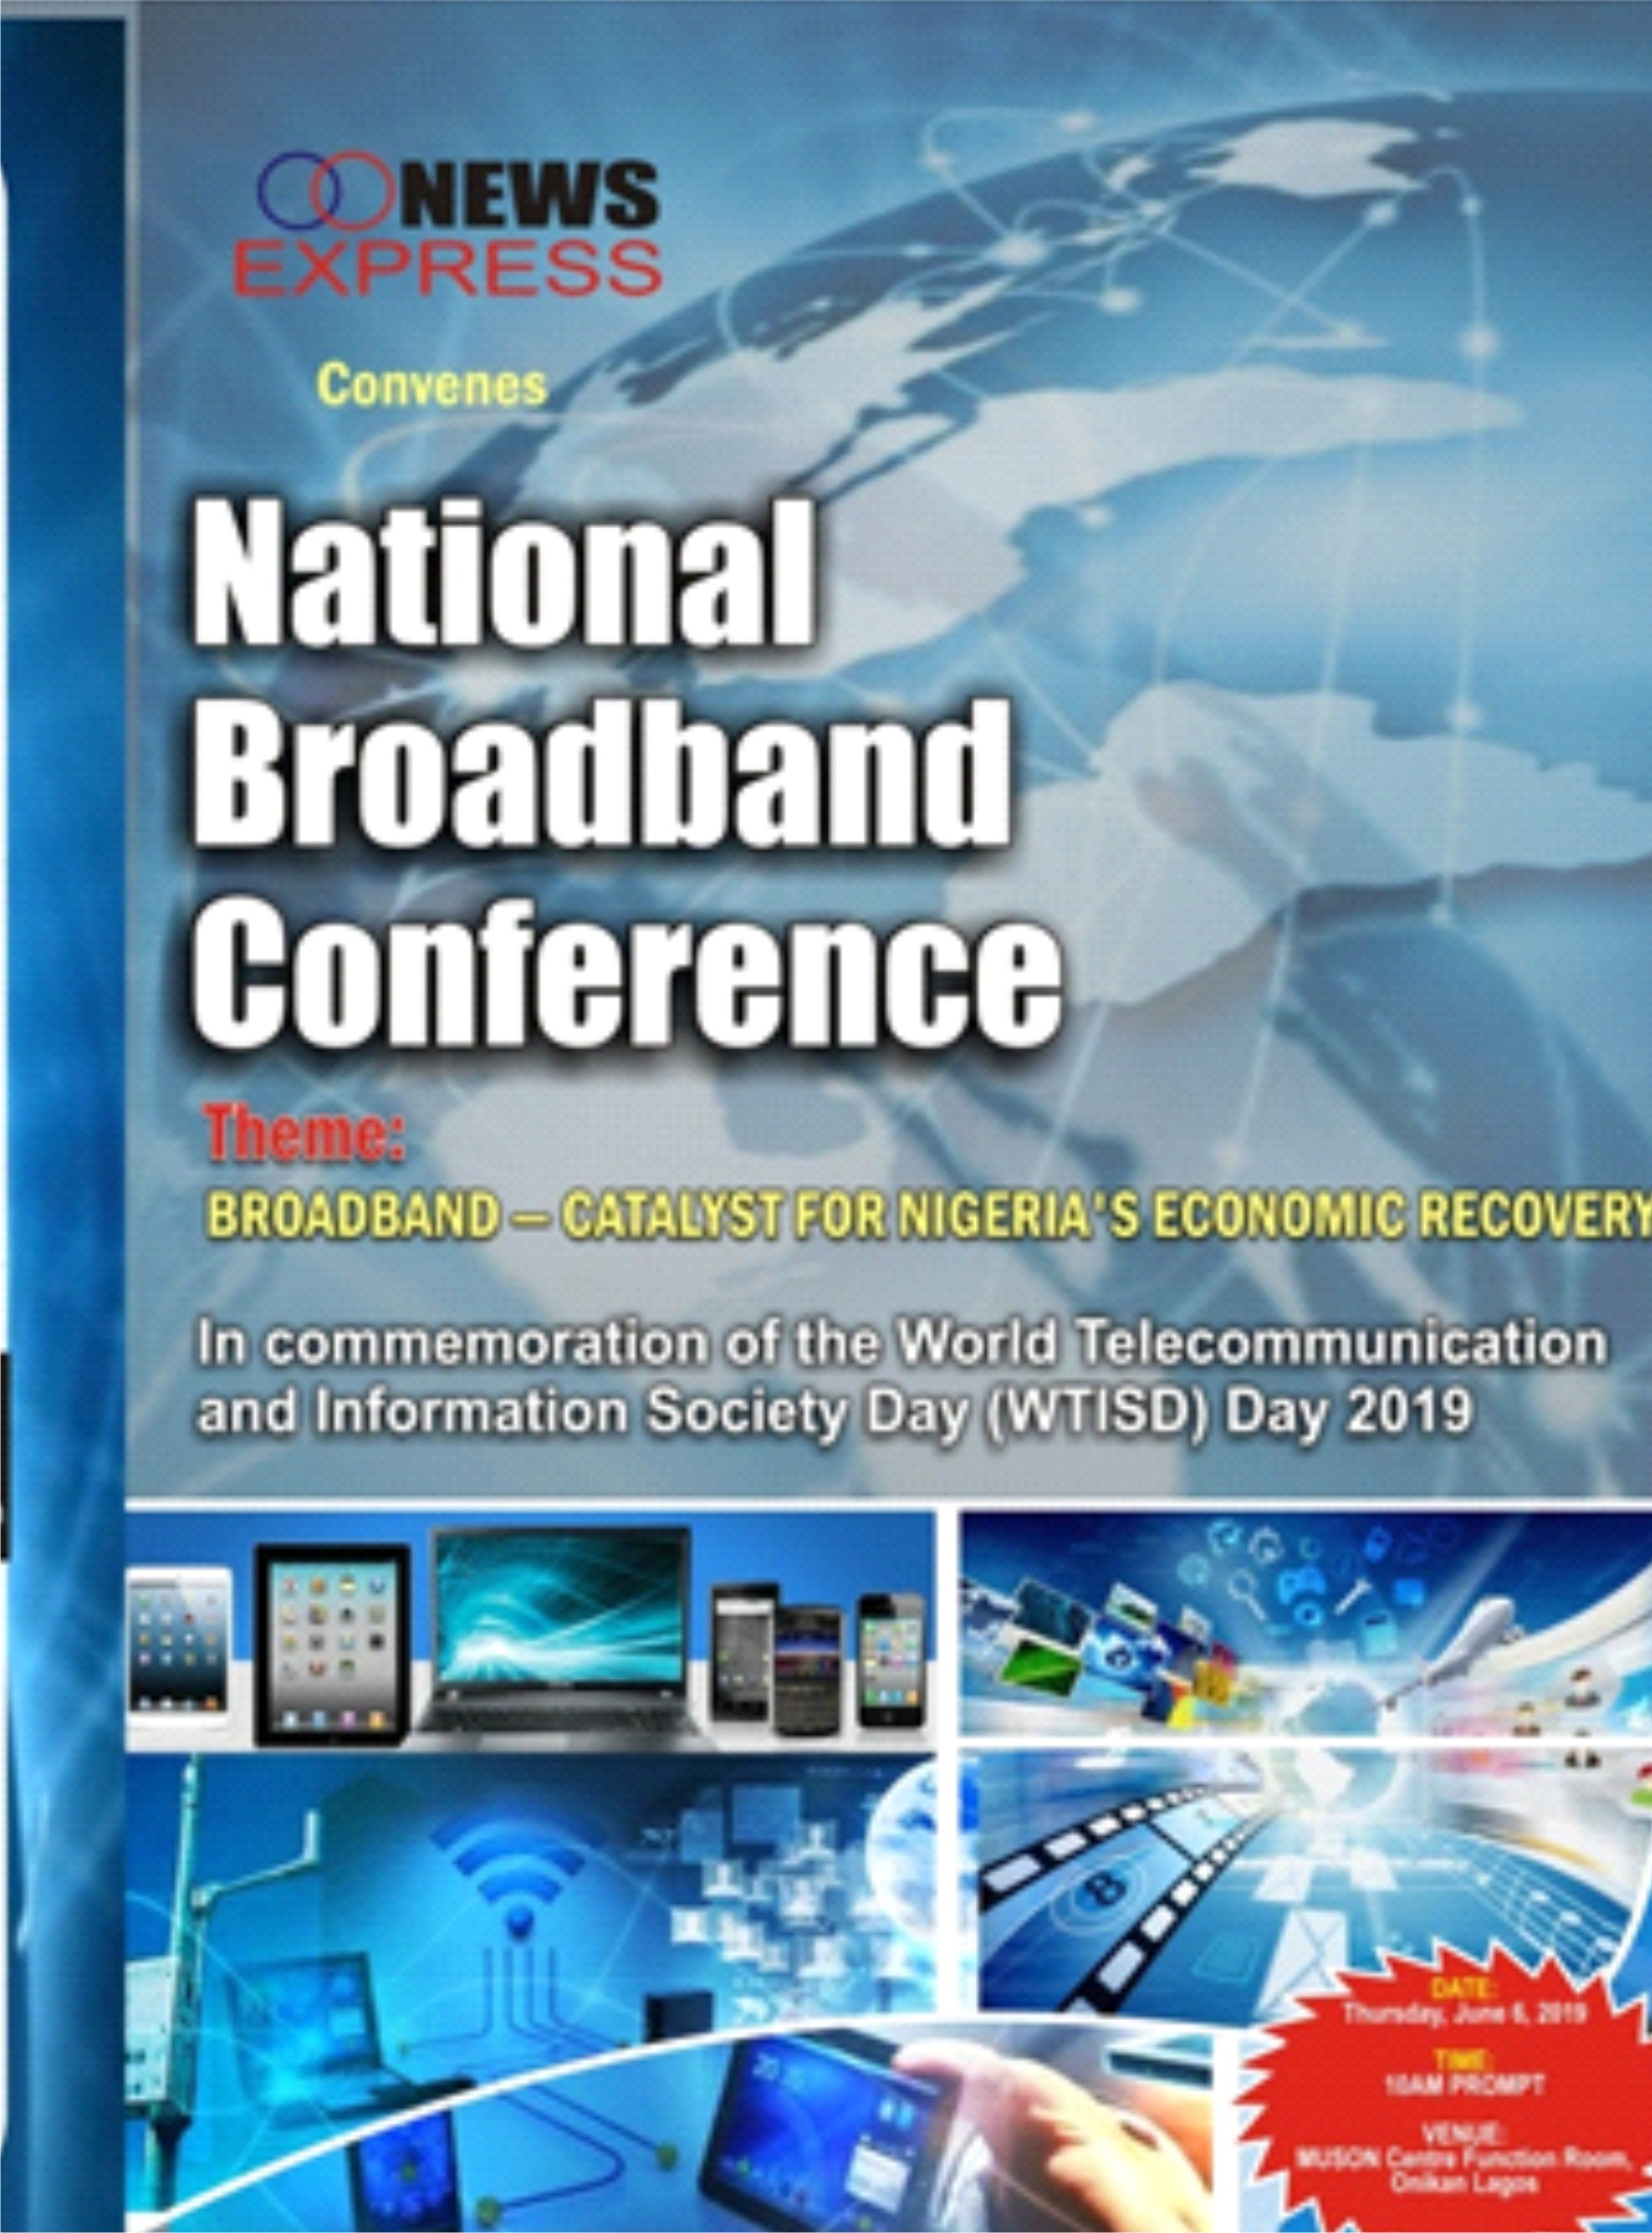 National Broadband Conference rescheduled